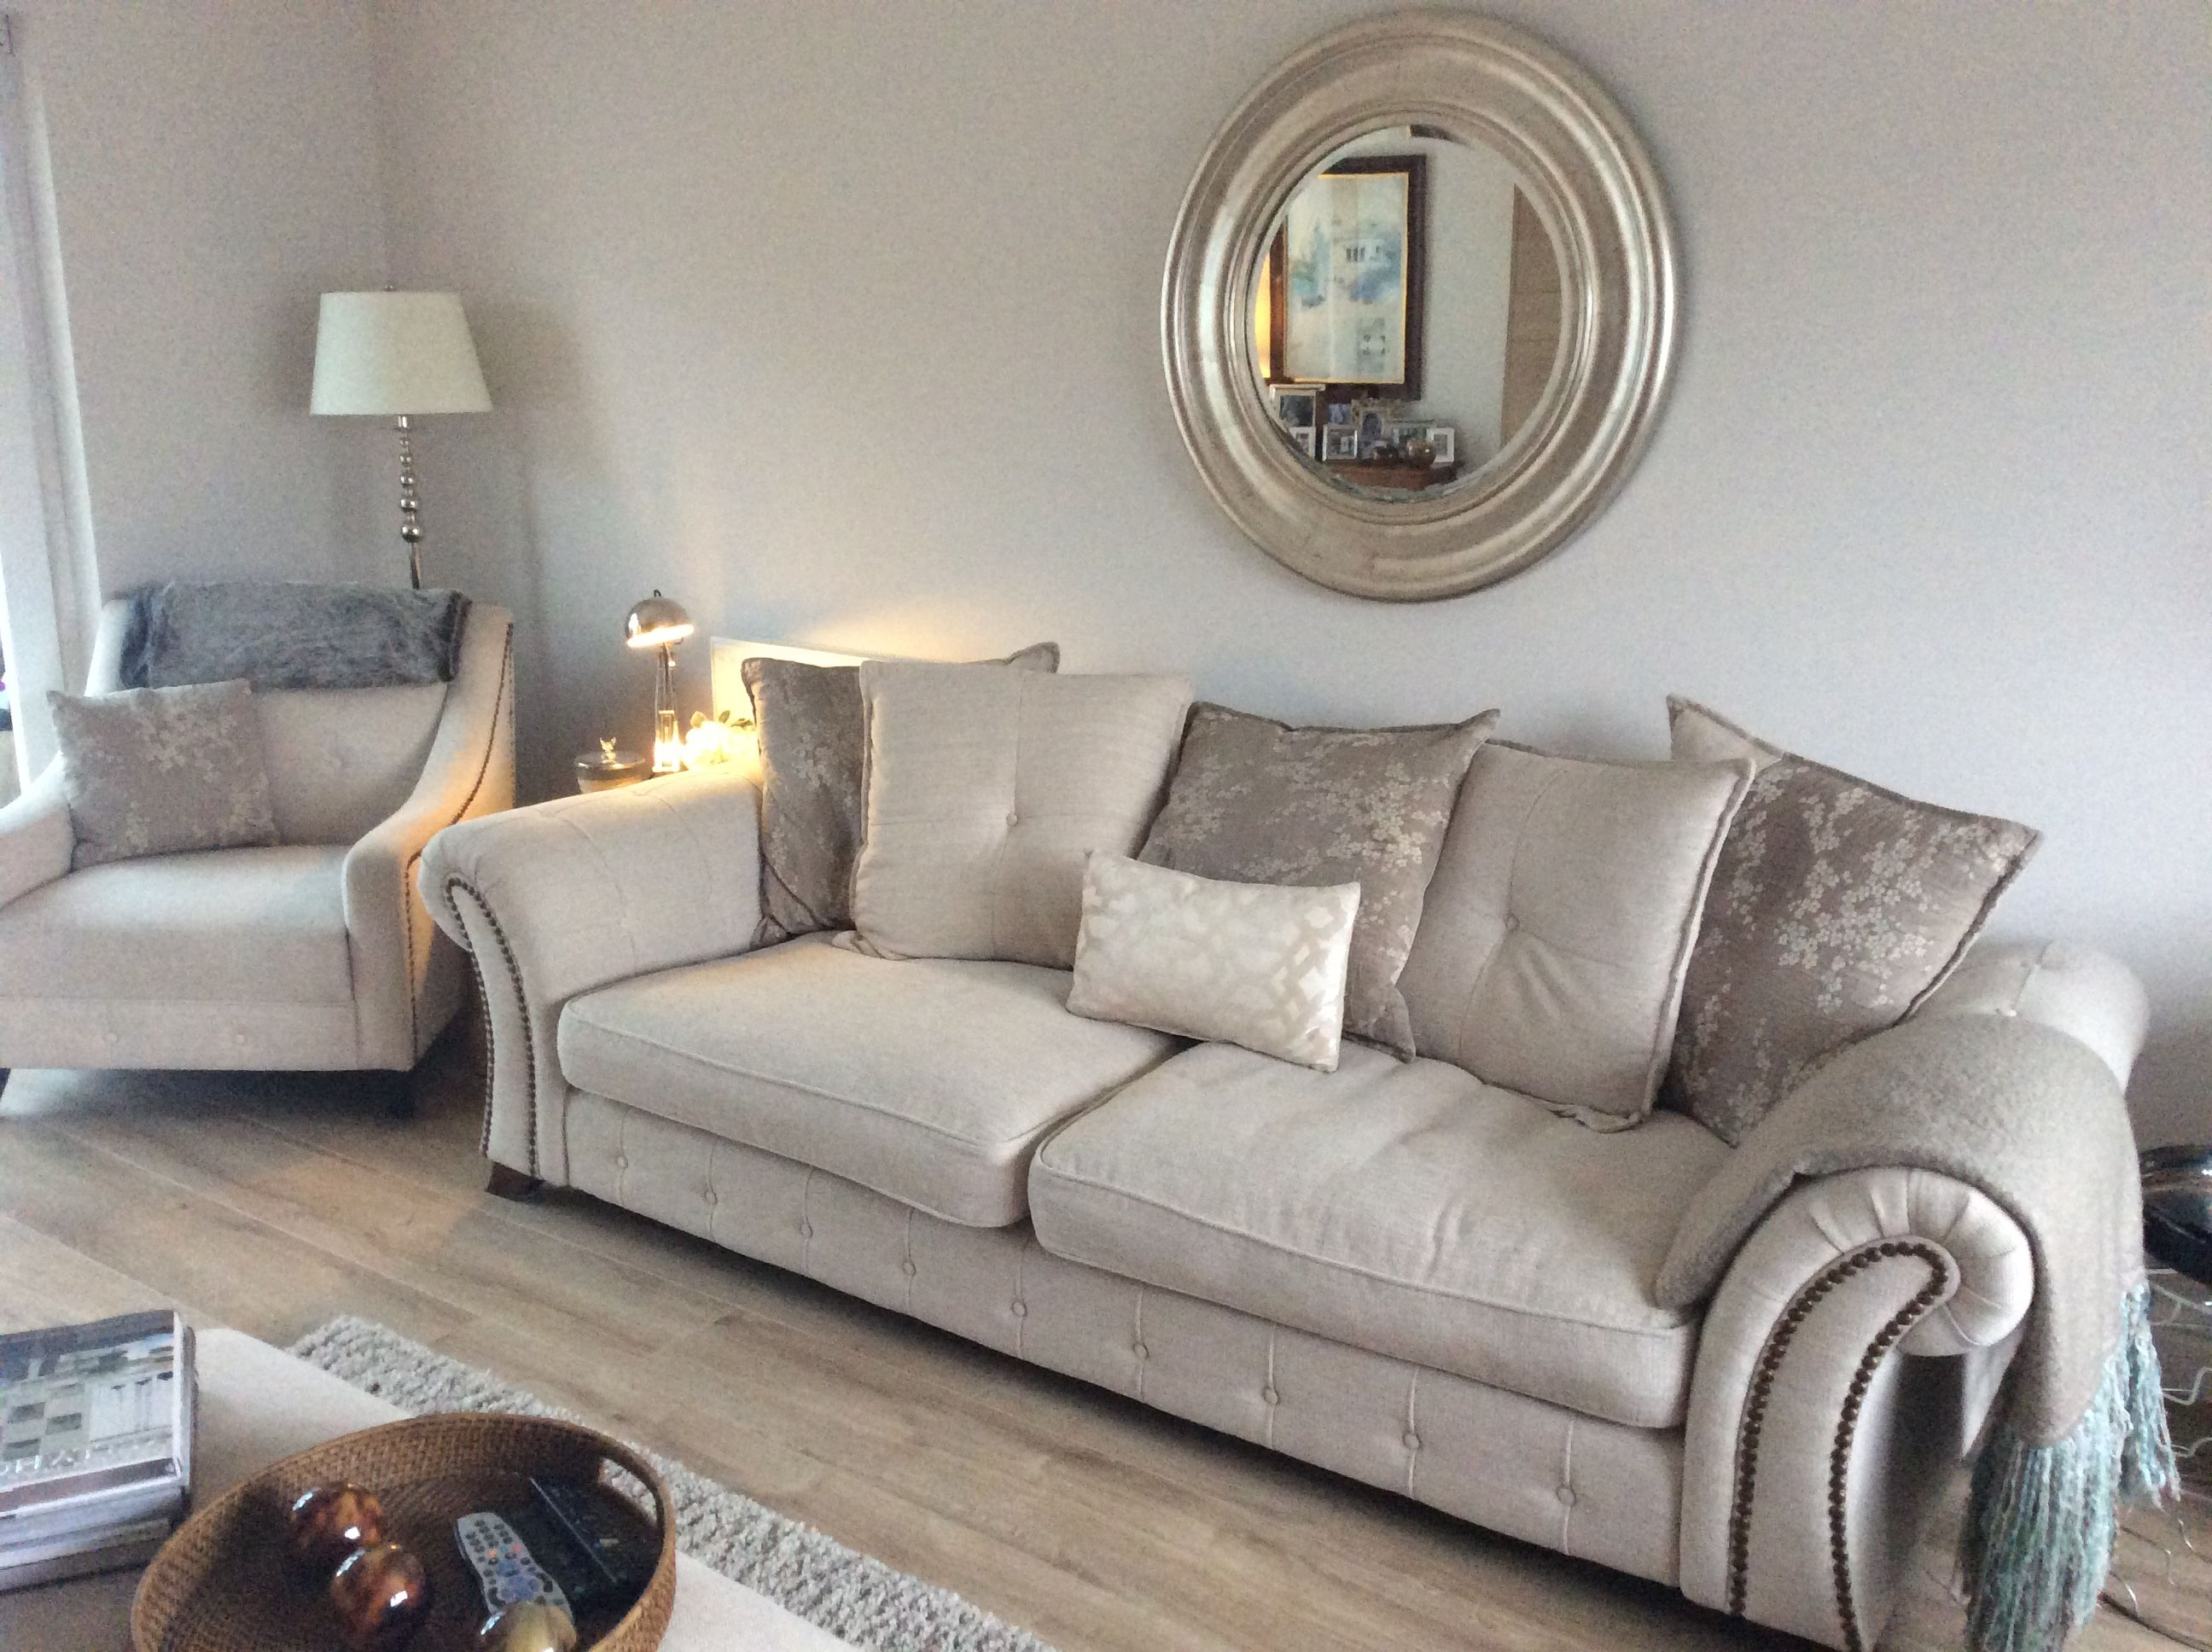 Walls Are Dulux Just Walnut Mirror From Bhs Sofa S From Dfs Throws